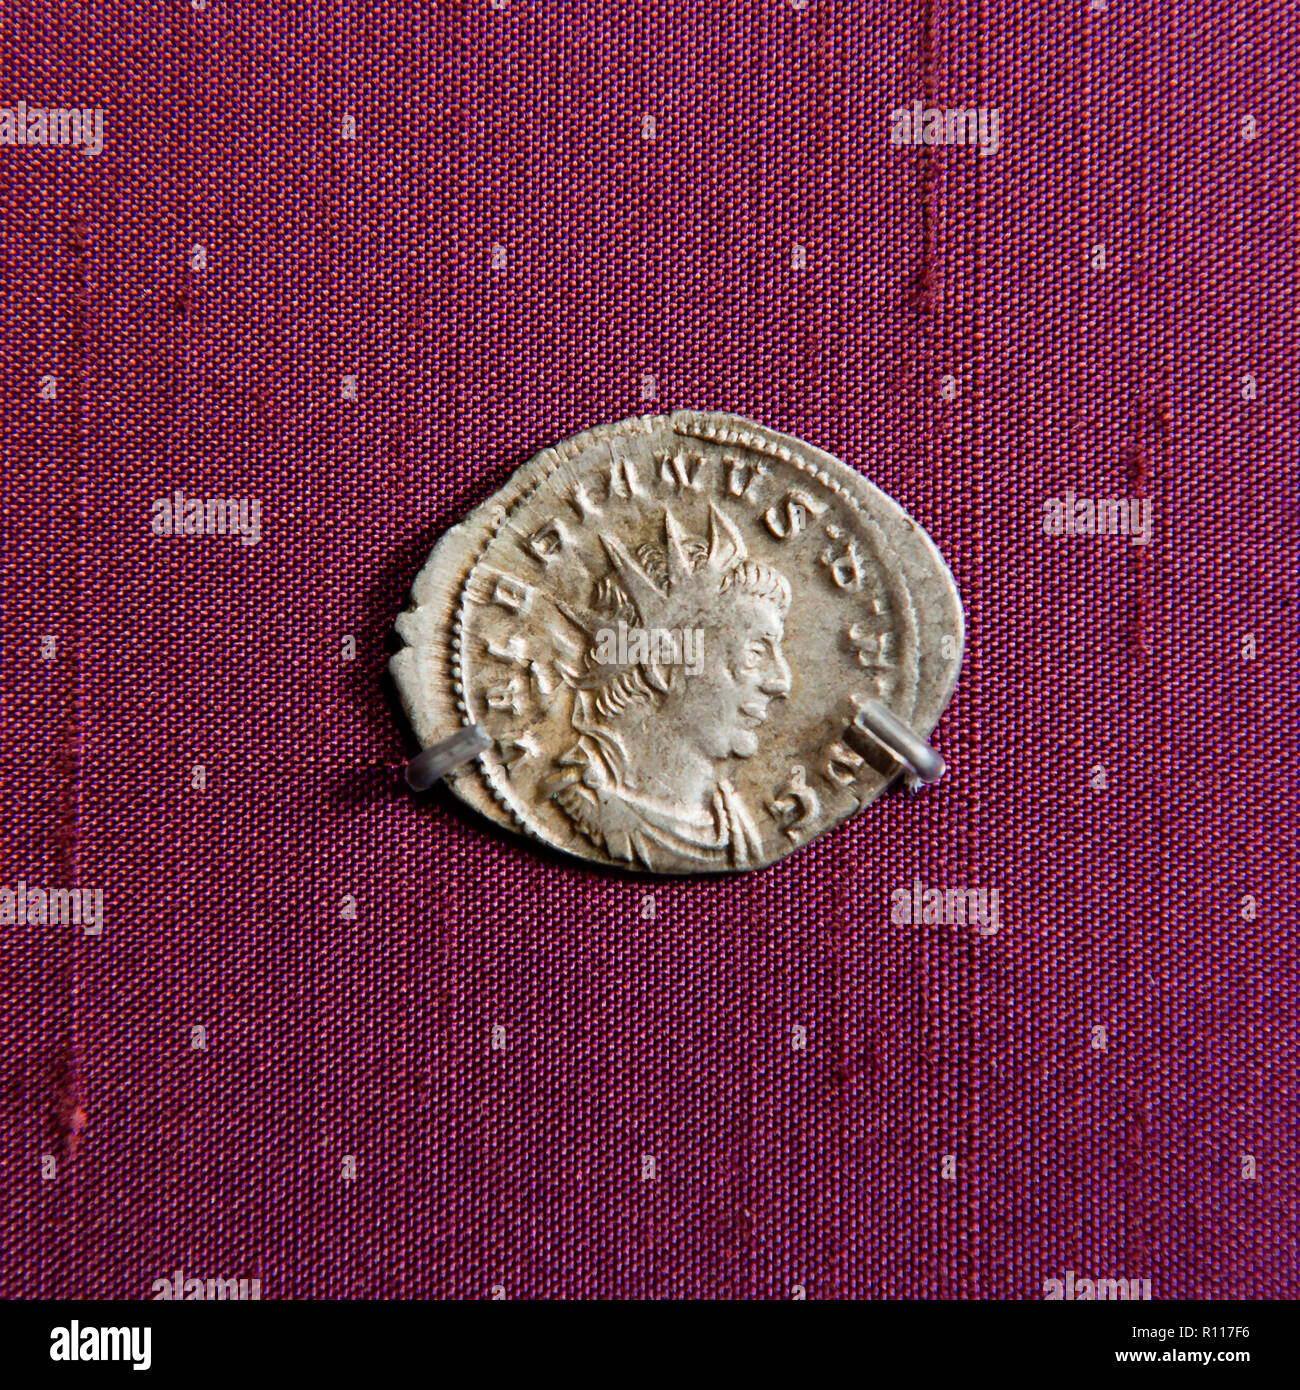 Man's profile on ancient coin Stock Photo